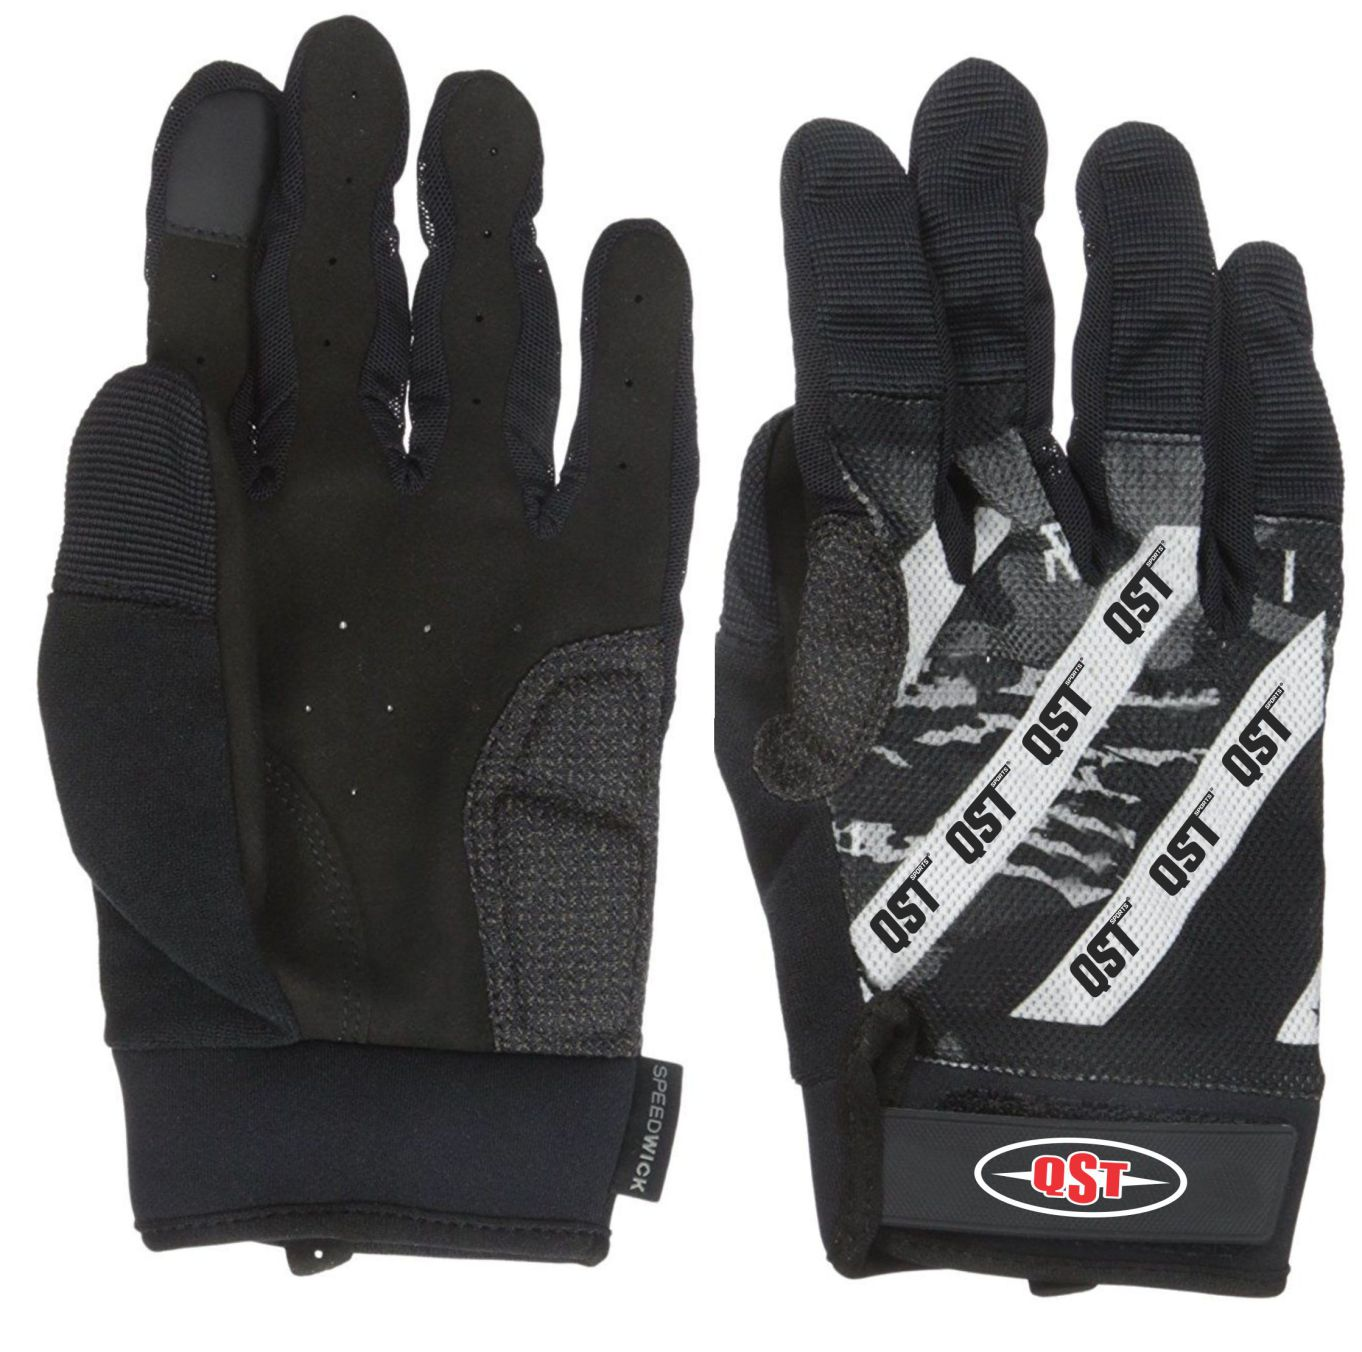 Crossfit Full finger Gloves - ACS-1561